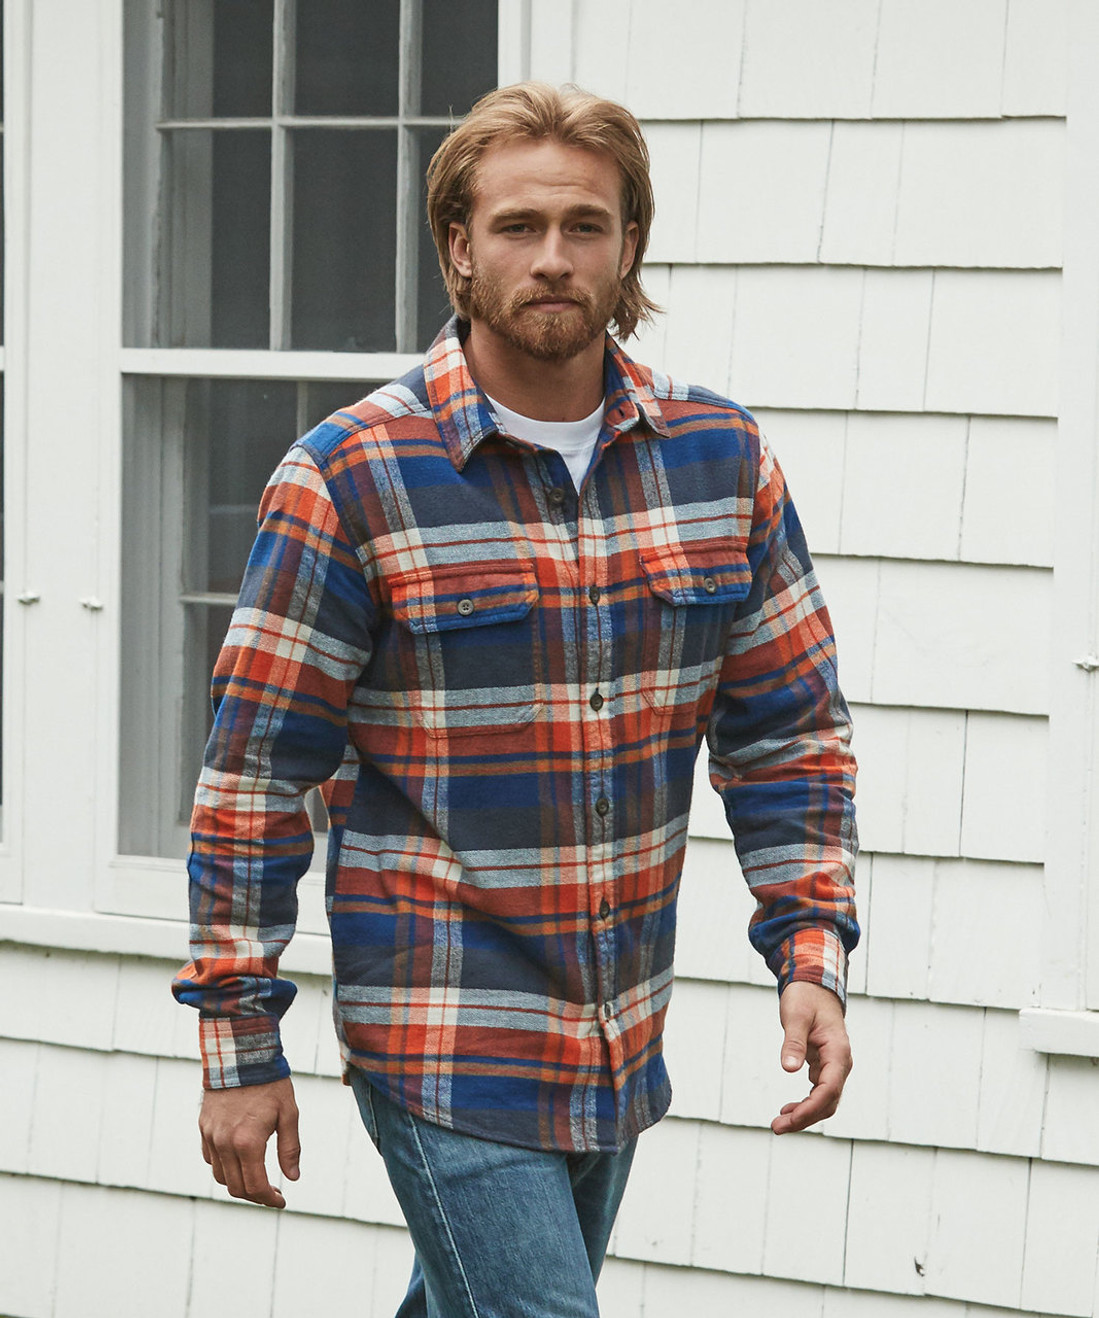 e19c6e9f71e1 Men s Oxbow Bend Plaid Flannel Shirt - 100% Cotton - Woolrich